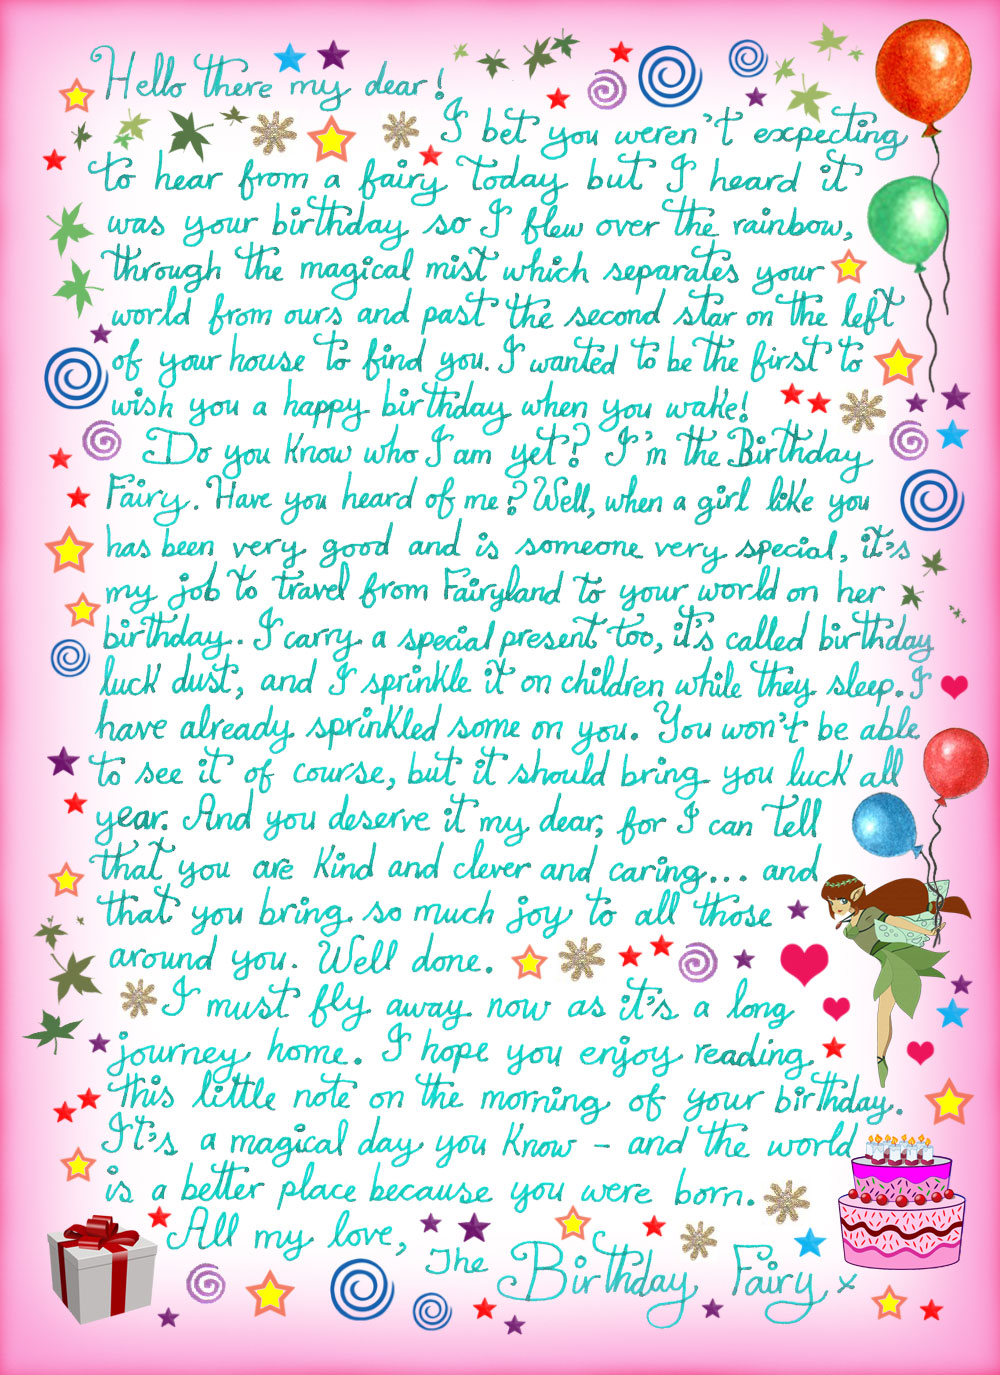 birthday letters Birthday Fairy Letter for a Girl | Rooftop Post Printables birthday letters